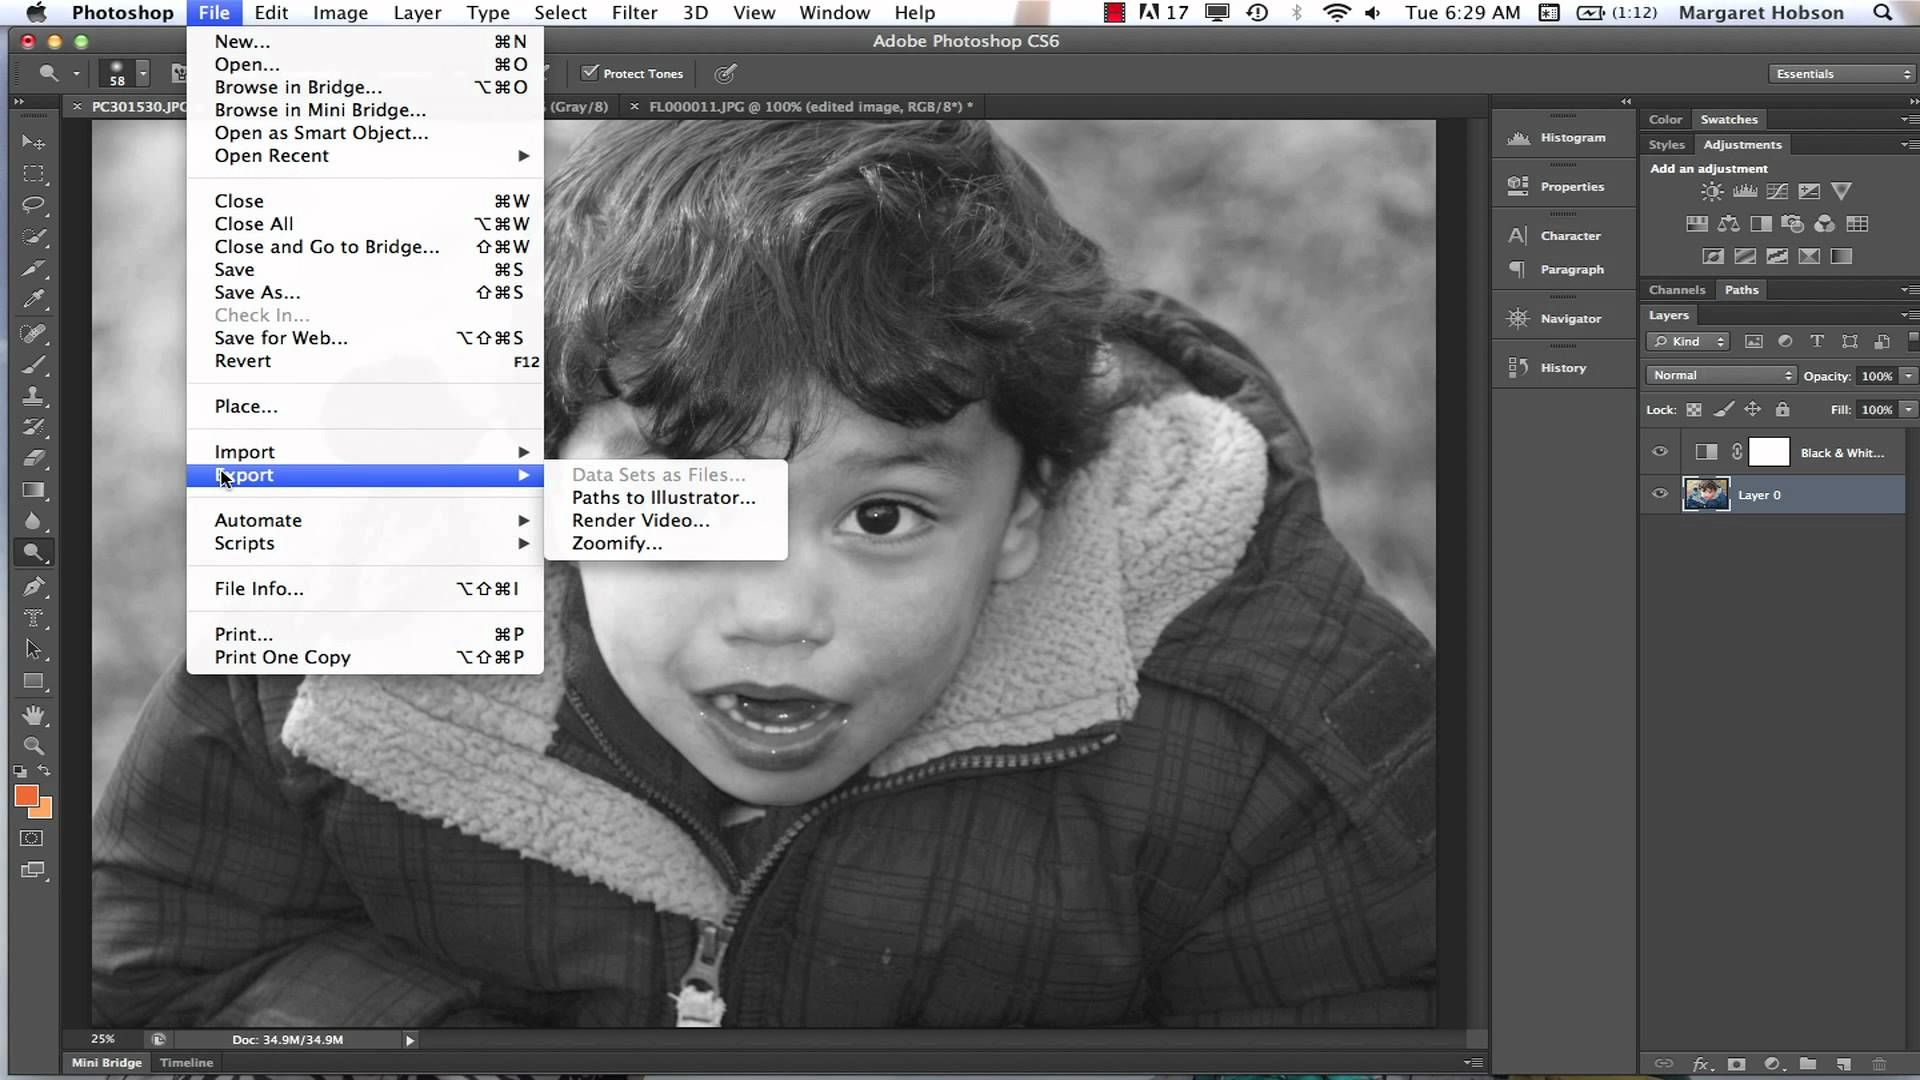 How to save photos in Photoshop (Photoshop)